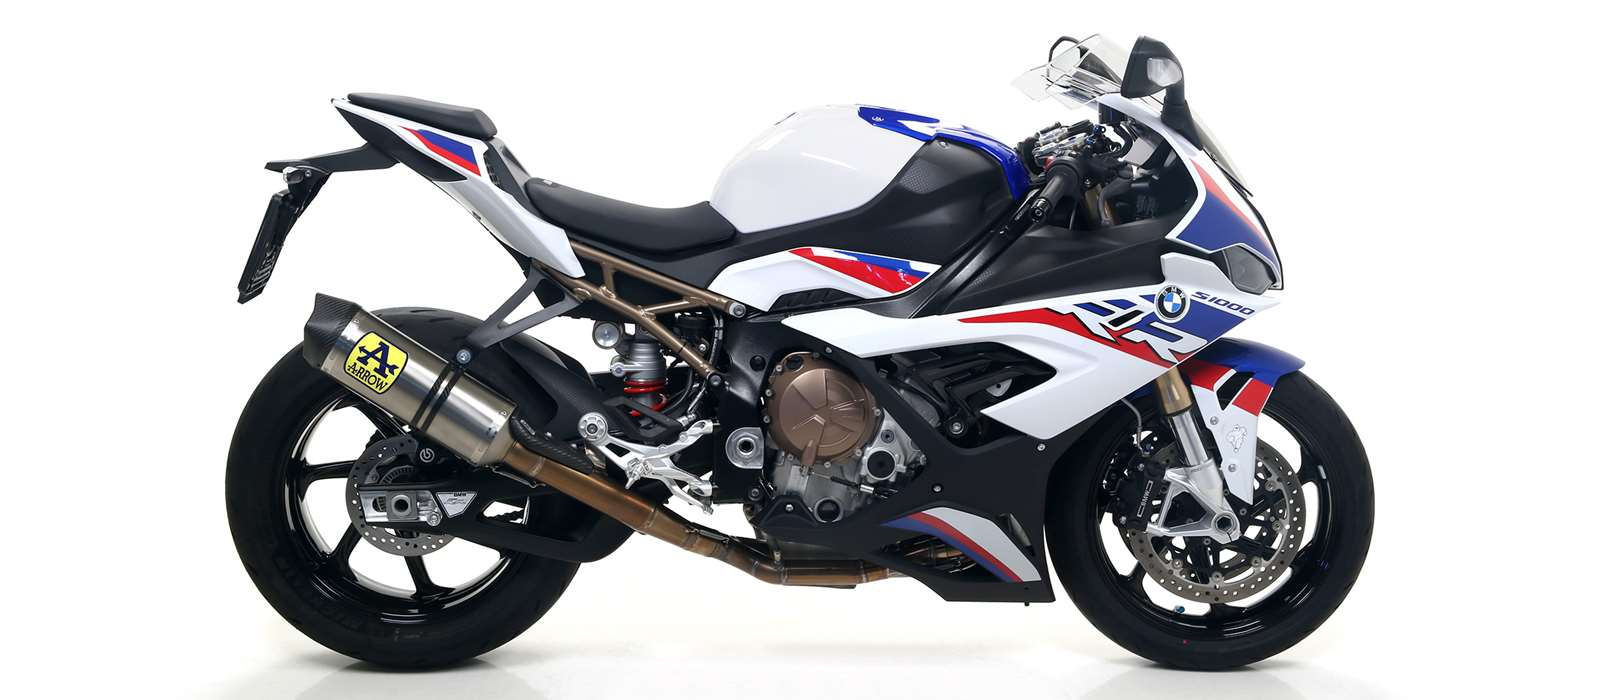 arrow competition evo racing exhaust full system for the bmw s1000rr 2019 and 2020 model